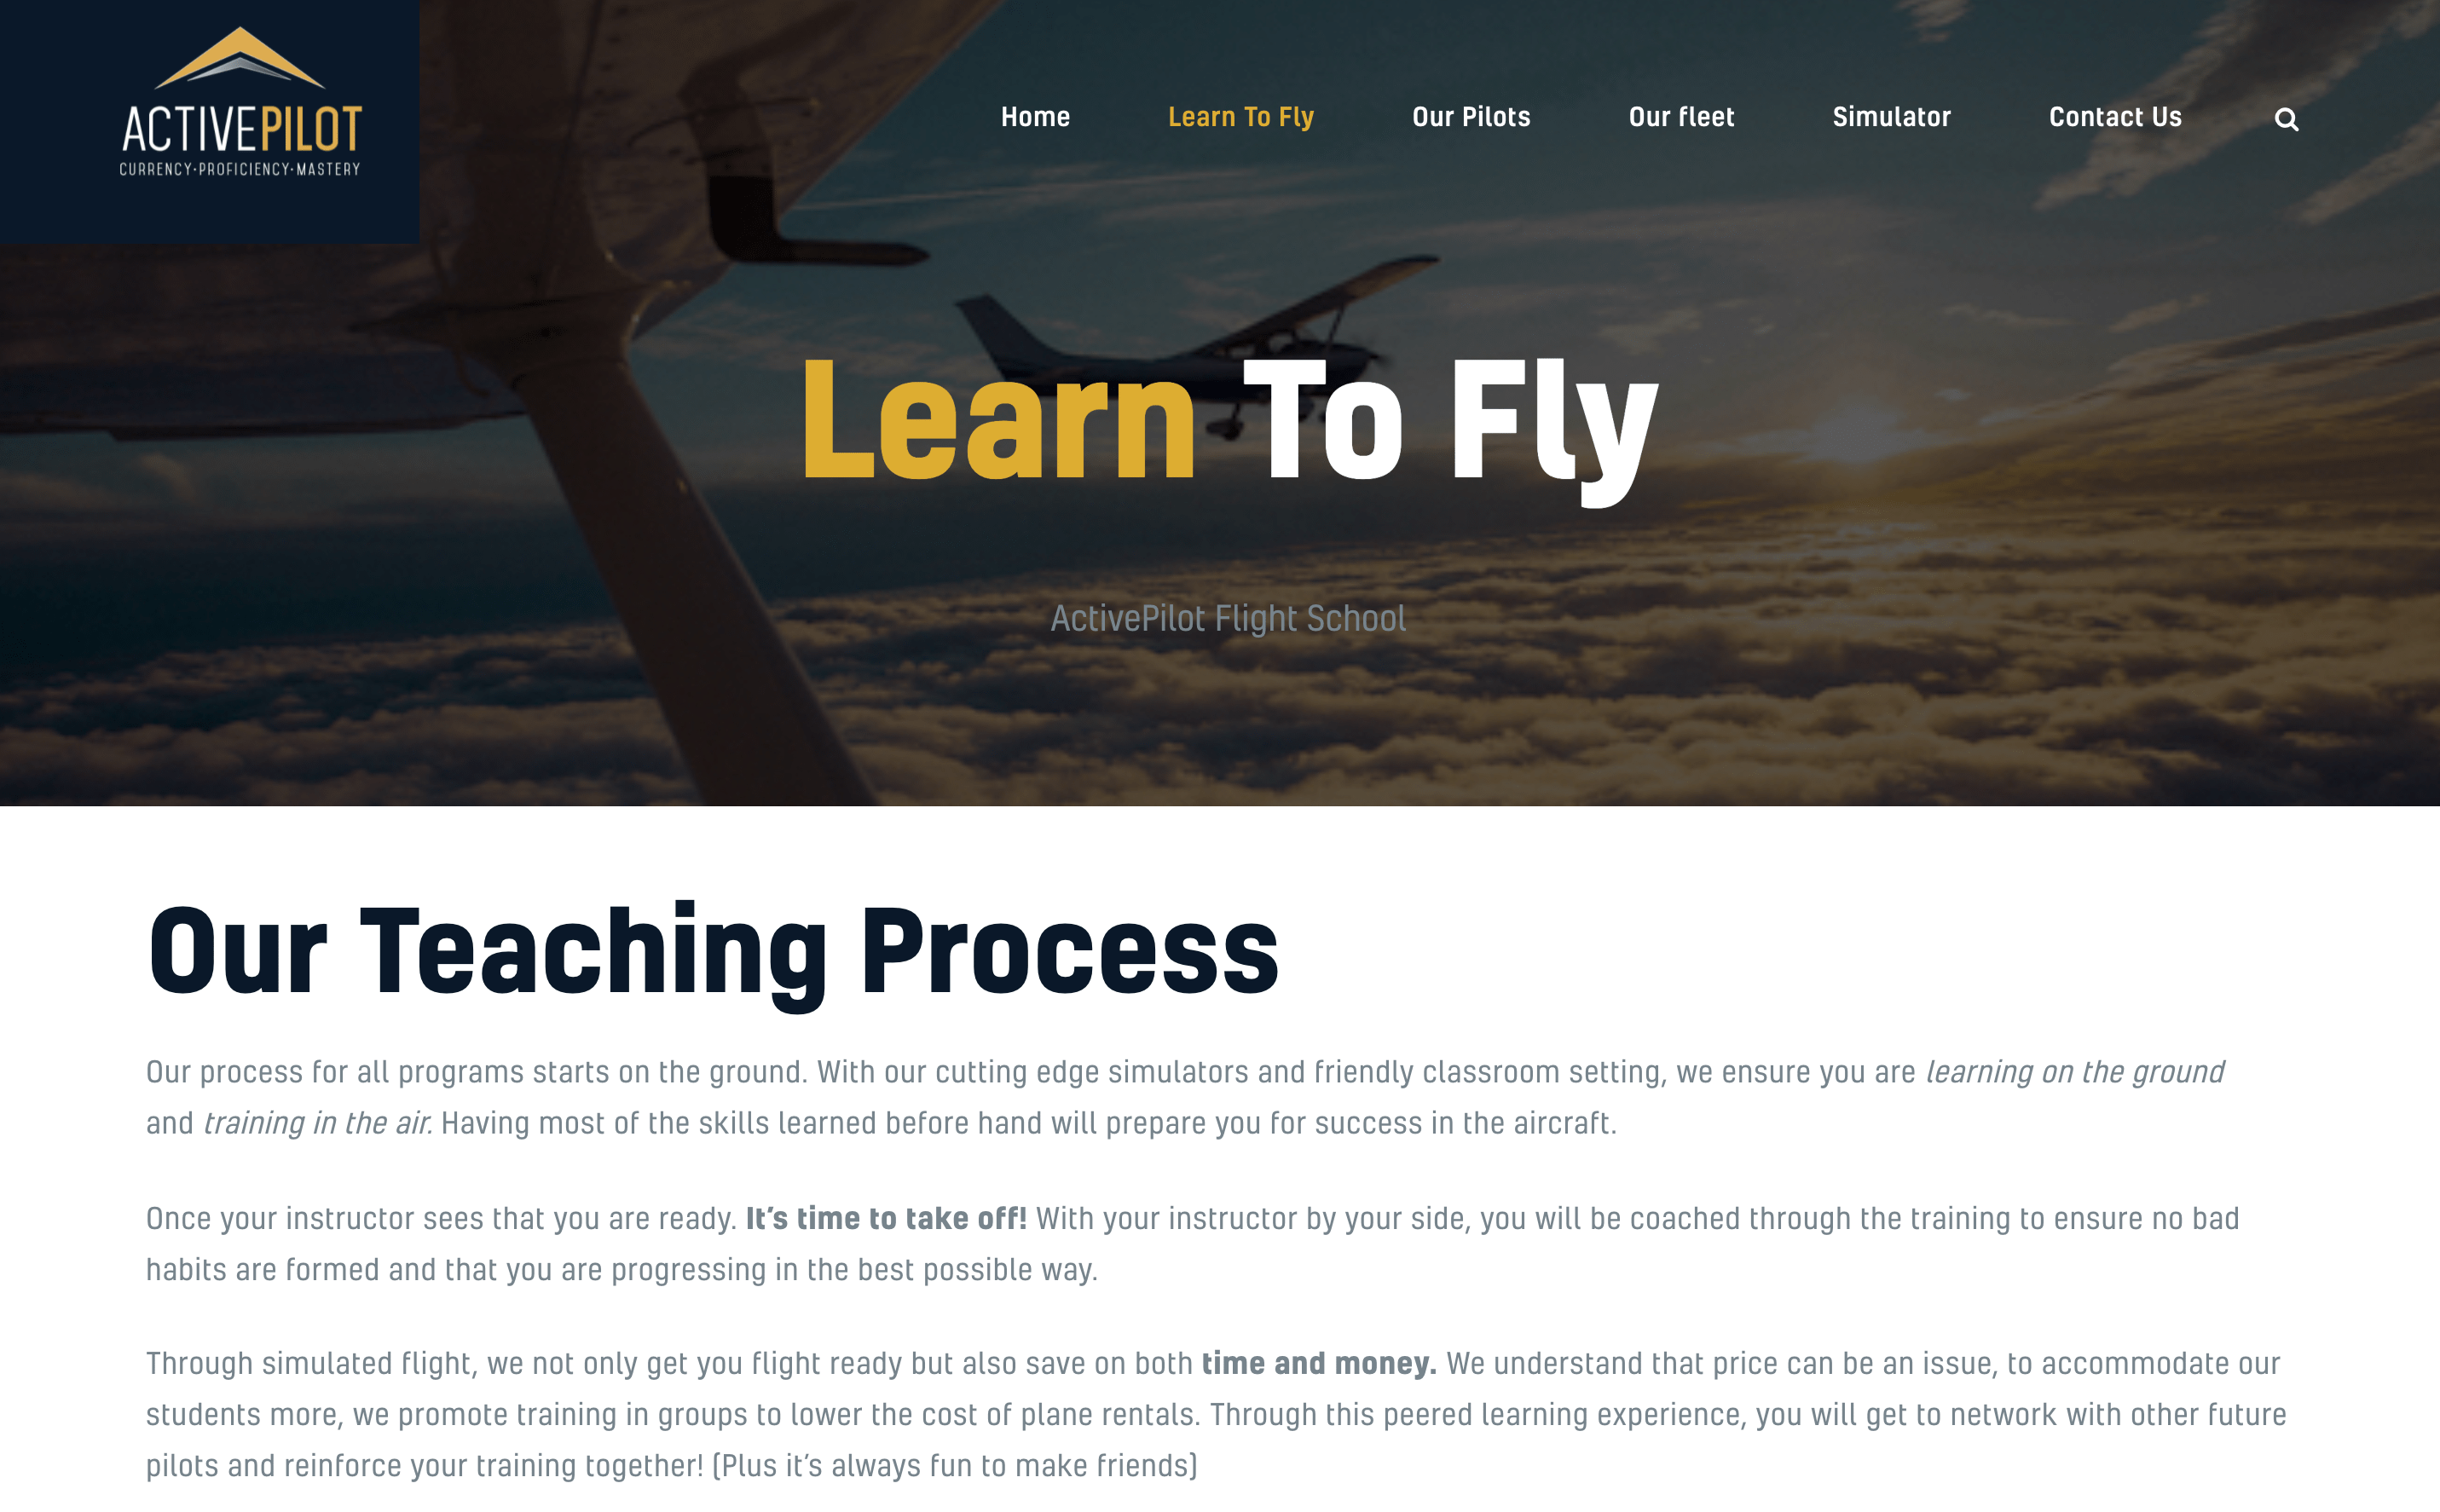 Active Pilot - Learn to fly with our proven pilot teaching process.